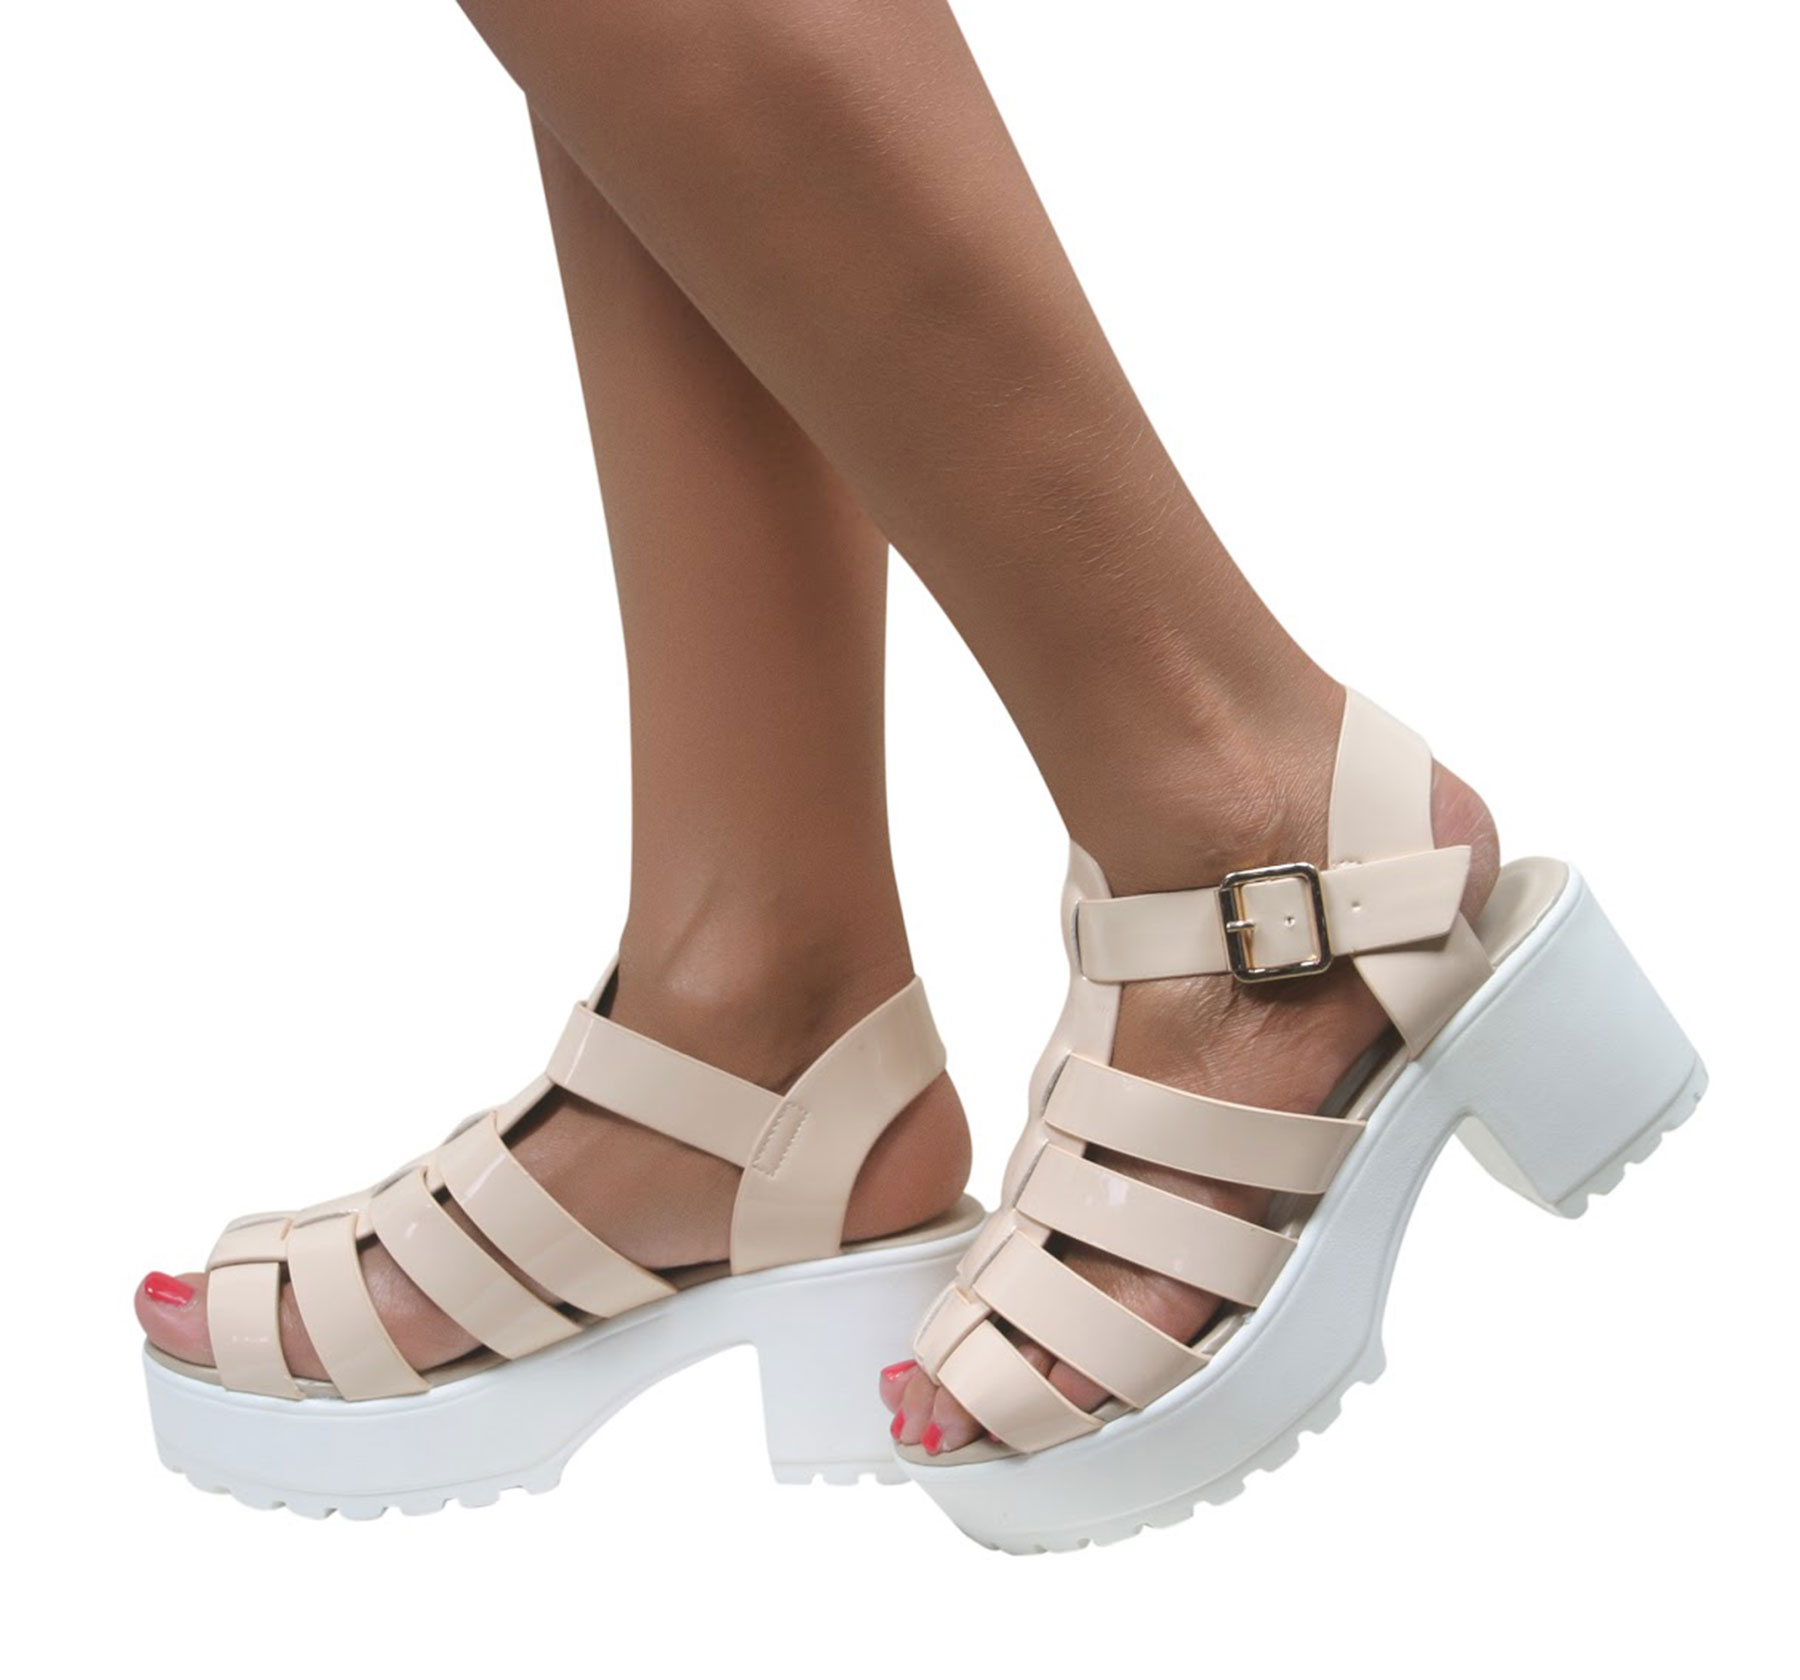 LADIES GLADIATOR CUT OUT PUNK SANDALS CLEATED SOLE CHUNKY BLOCK